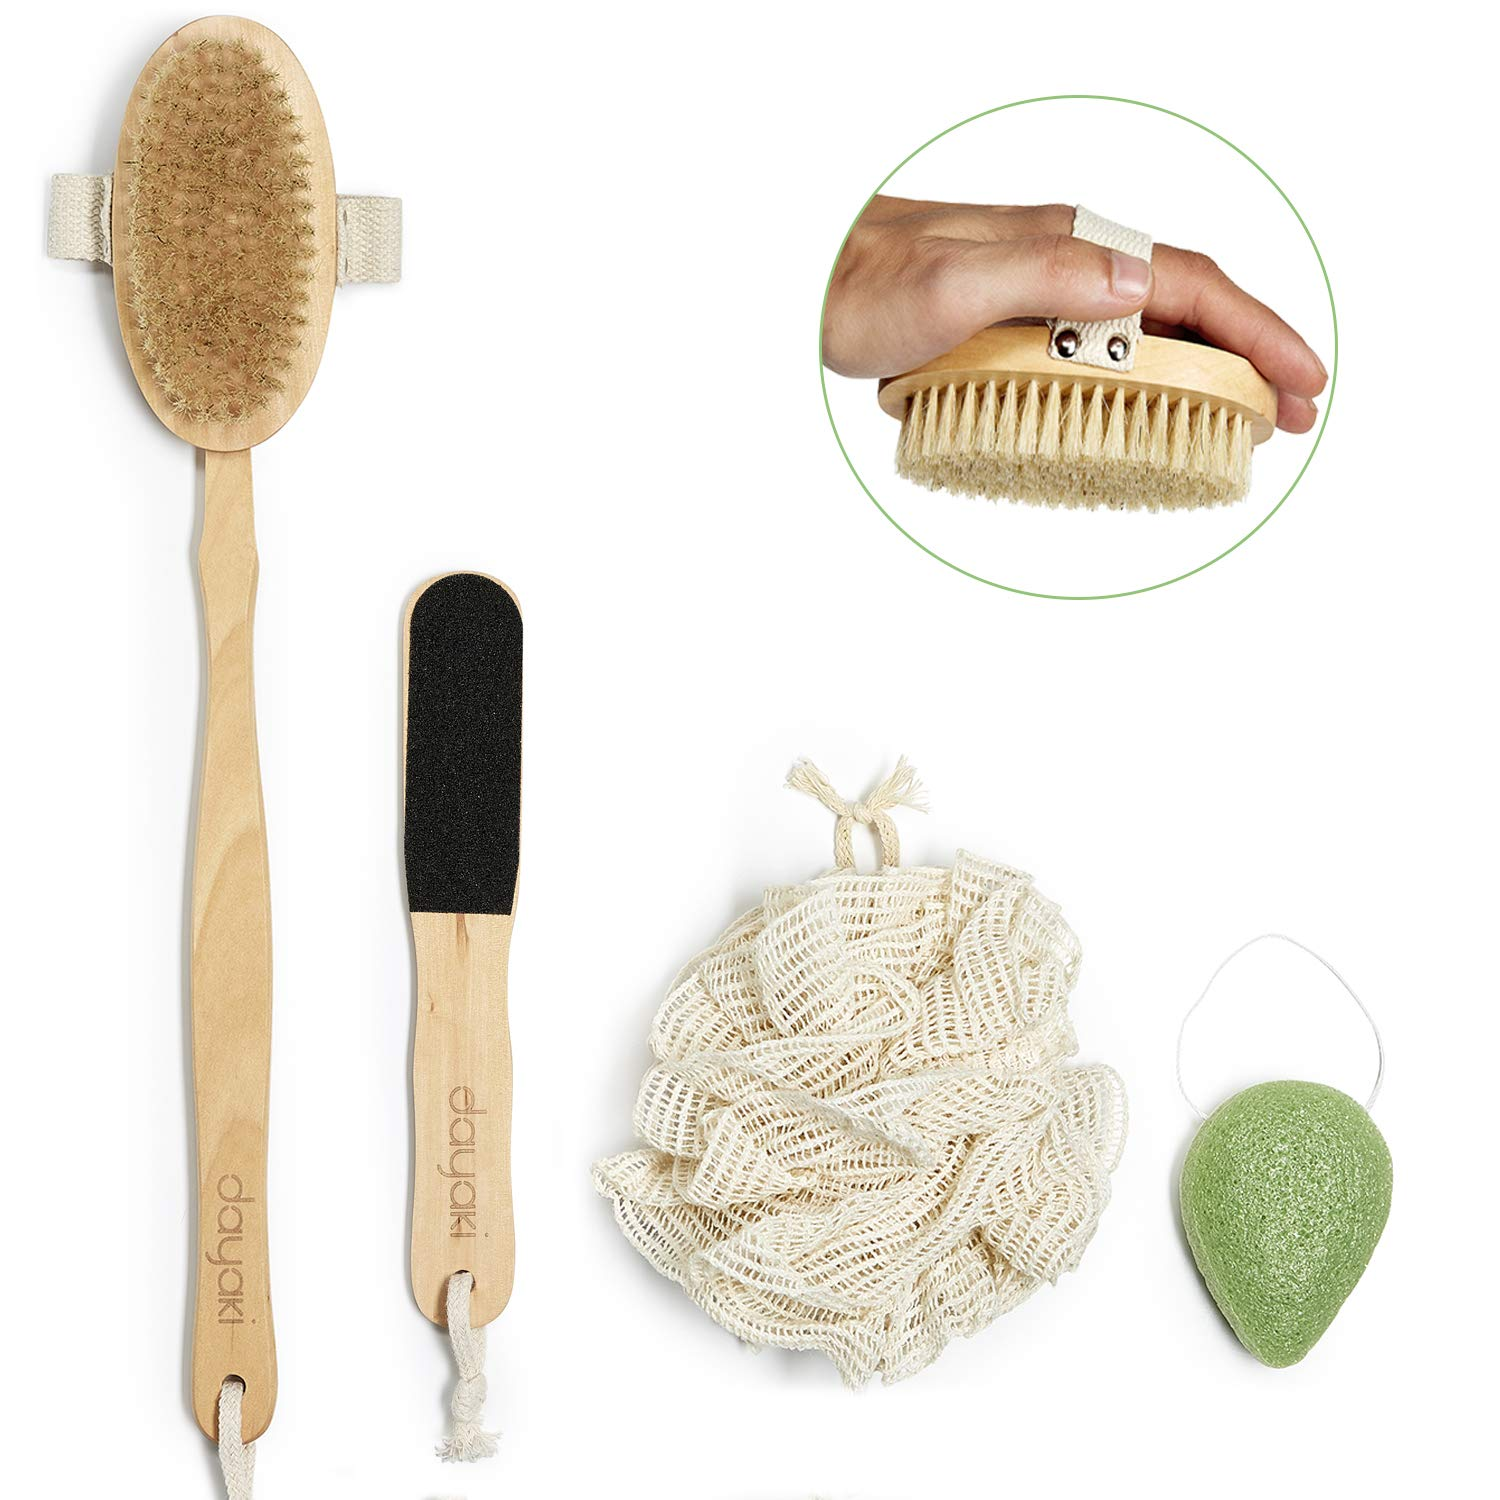 Premium Dry Brushing Body Brush, Cellulite Massager and Lymphatic Drainage. Exfoliating Body Scrub Set All natural, no Plastic, with Konjac Sponge, Foot File and Shower Pouf for Natural Radiant Skin! Dayaki